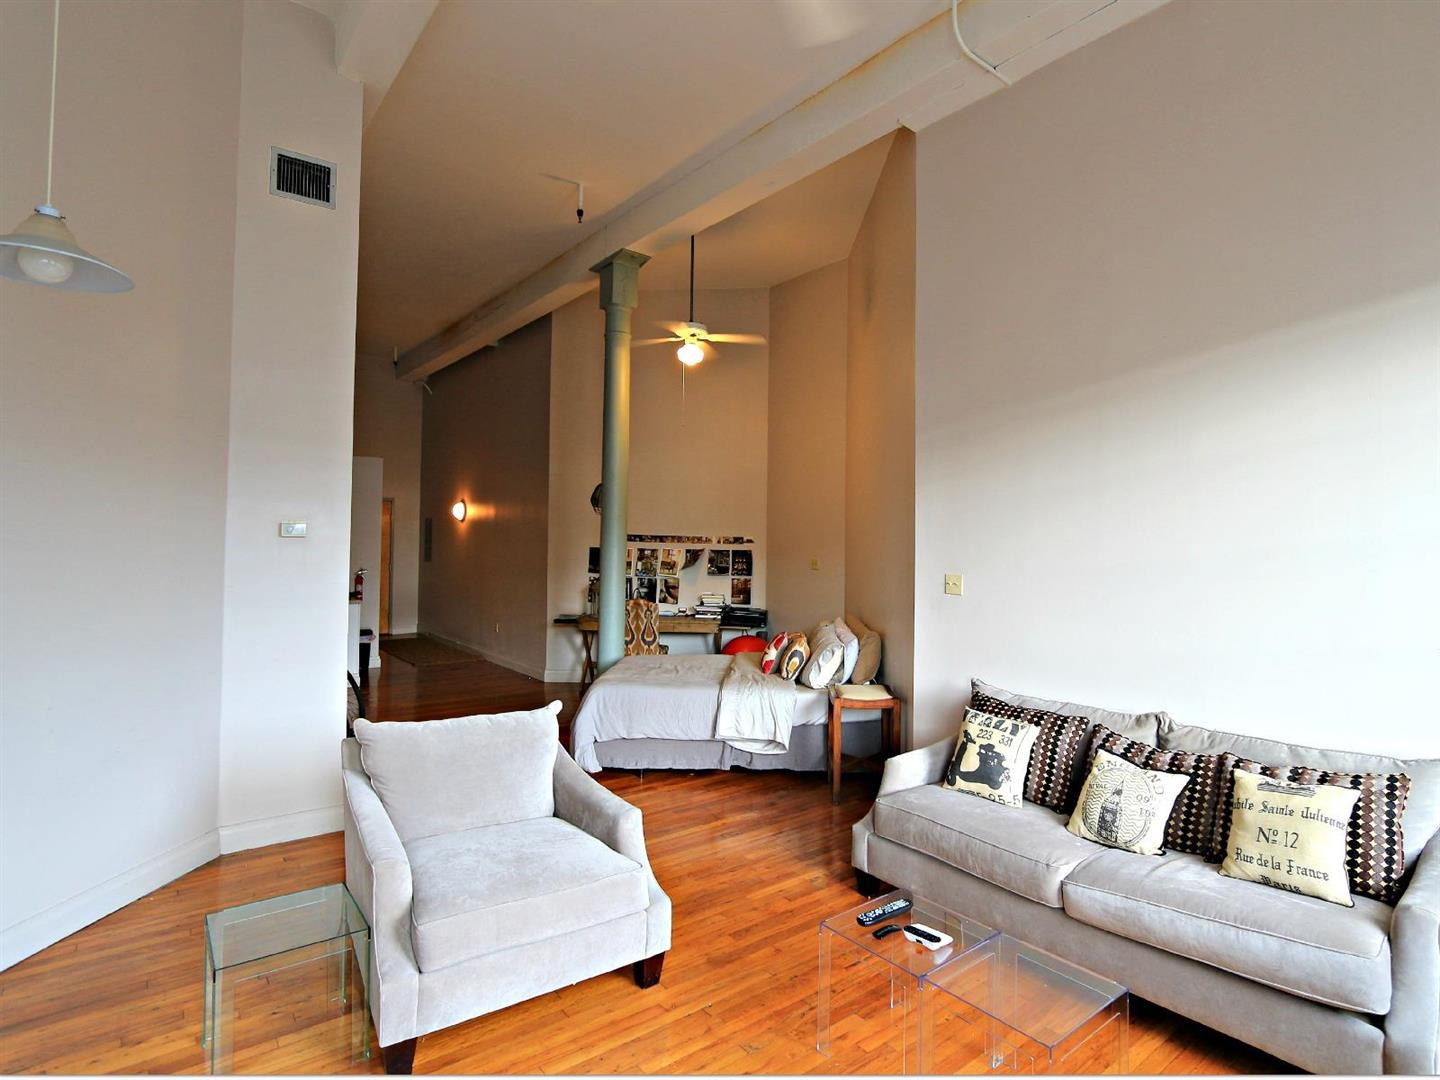 920Poeyfarre267,Largestudio,CottonMillCondos.jpg